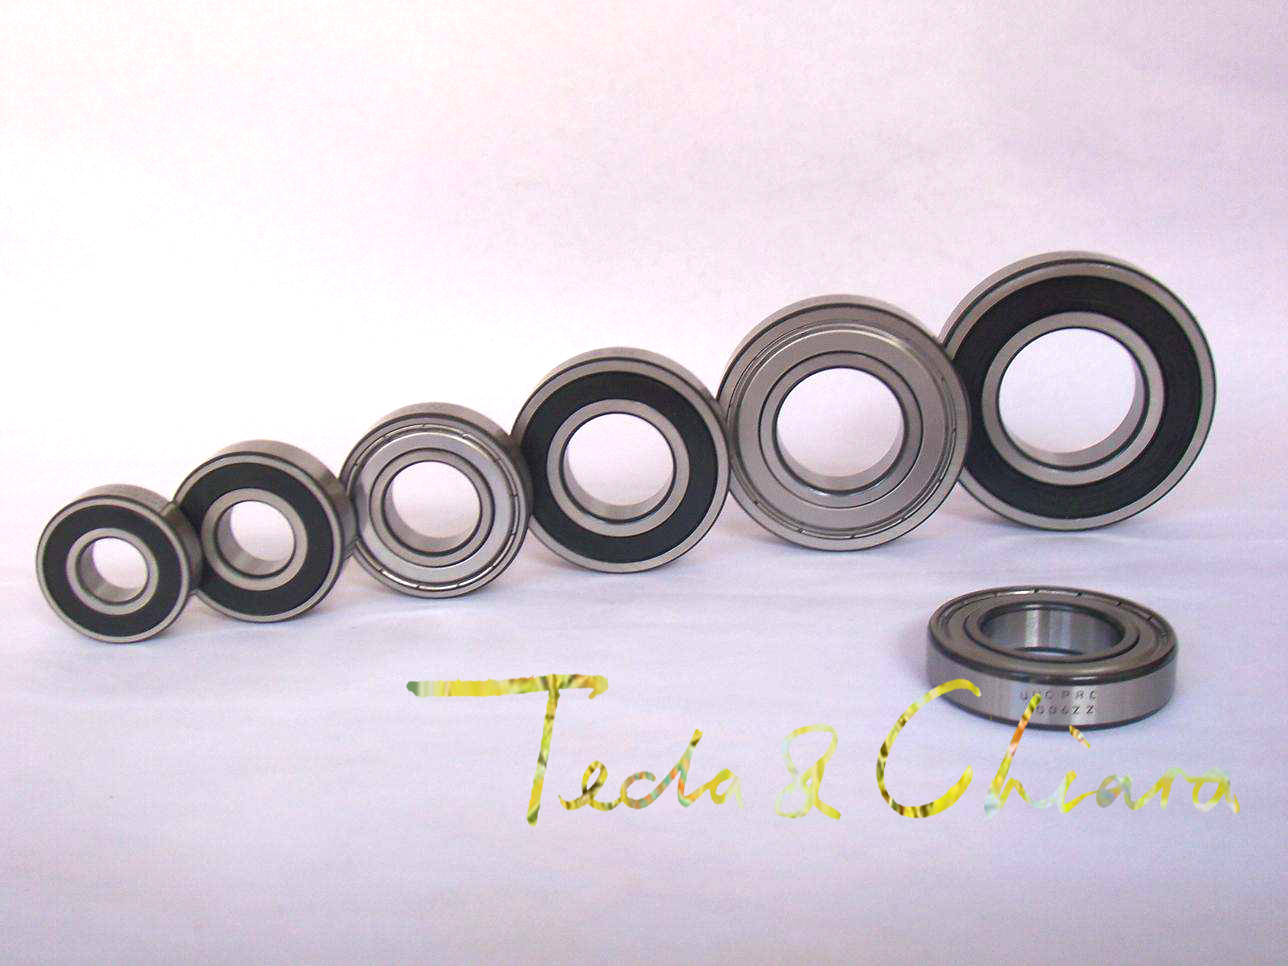 10Pcs 1Lot 6707 6707ZZ <font><b>6707RS</b></font> 6707-2Z 6707Z 6707-2RS ZZ RS RZ 2RZ Deep Groove Ball Bearings 35 x 44 x 5mm image